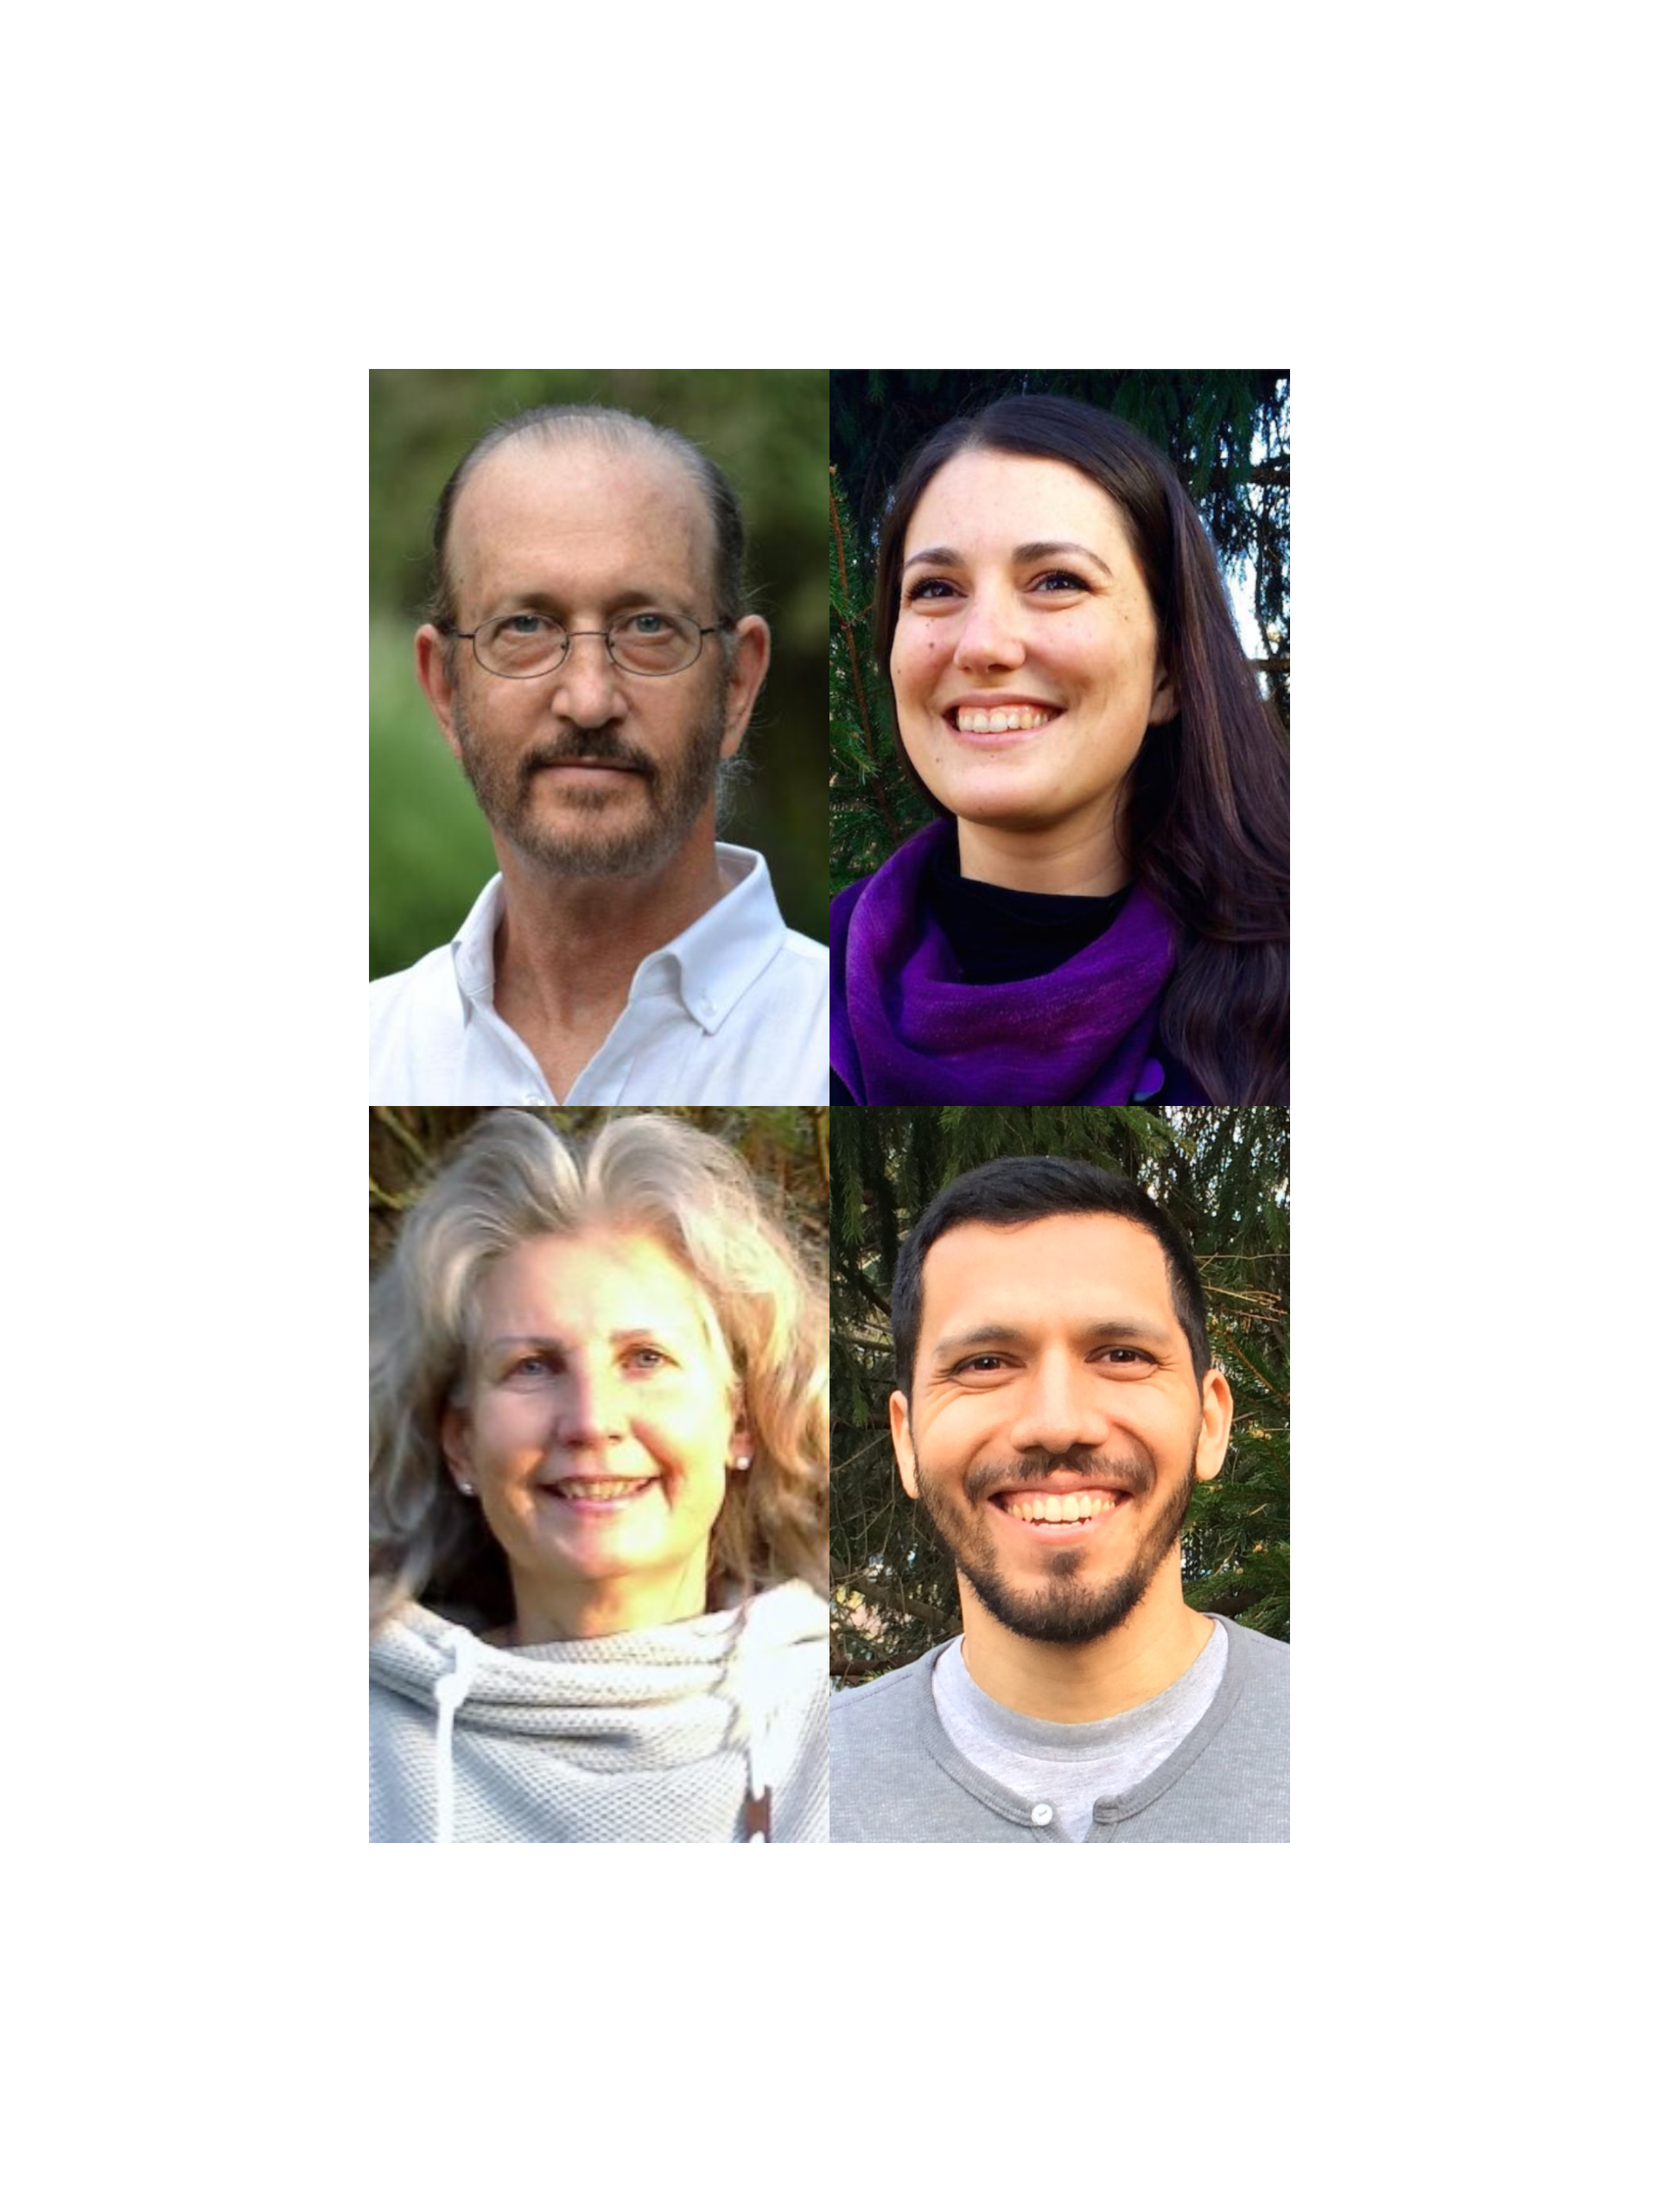 The Team - For the members of the NYCNVC Compassion Course Online team, this is not a job, this is not even a project – it is a calling, a way for us to live out our deep desire to contribute to a more compassionate world.Team Member Bios